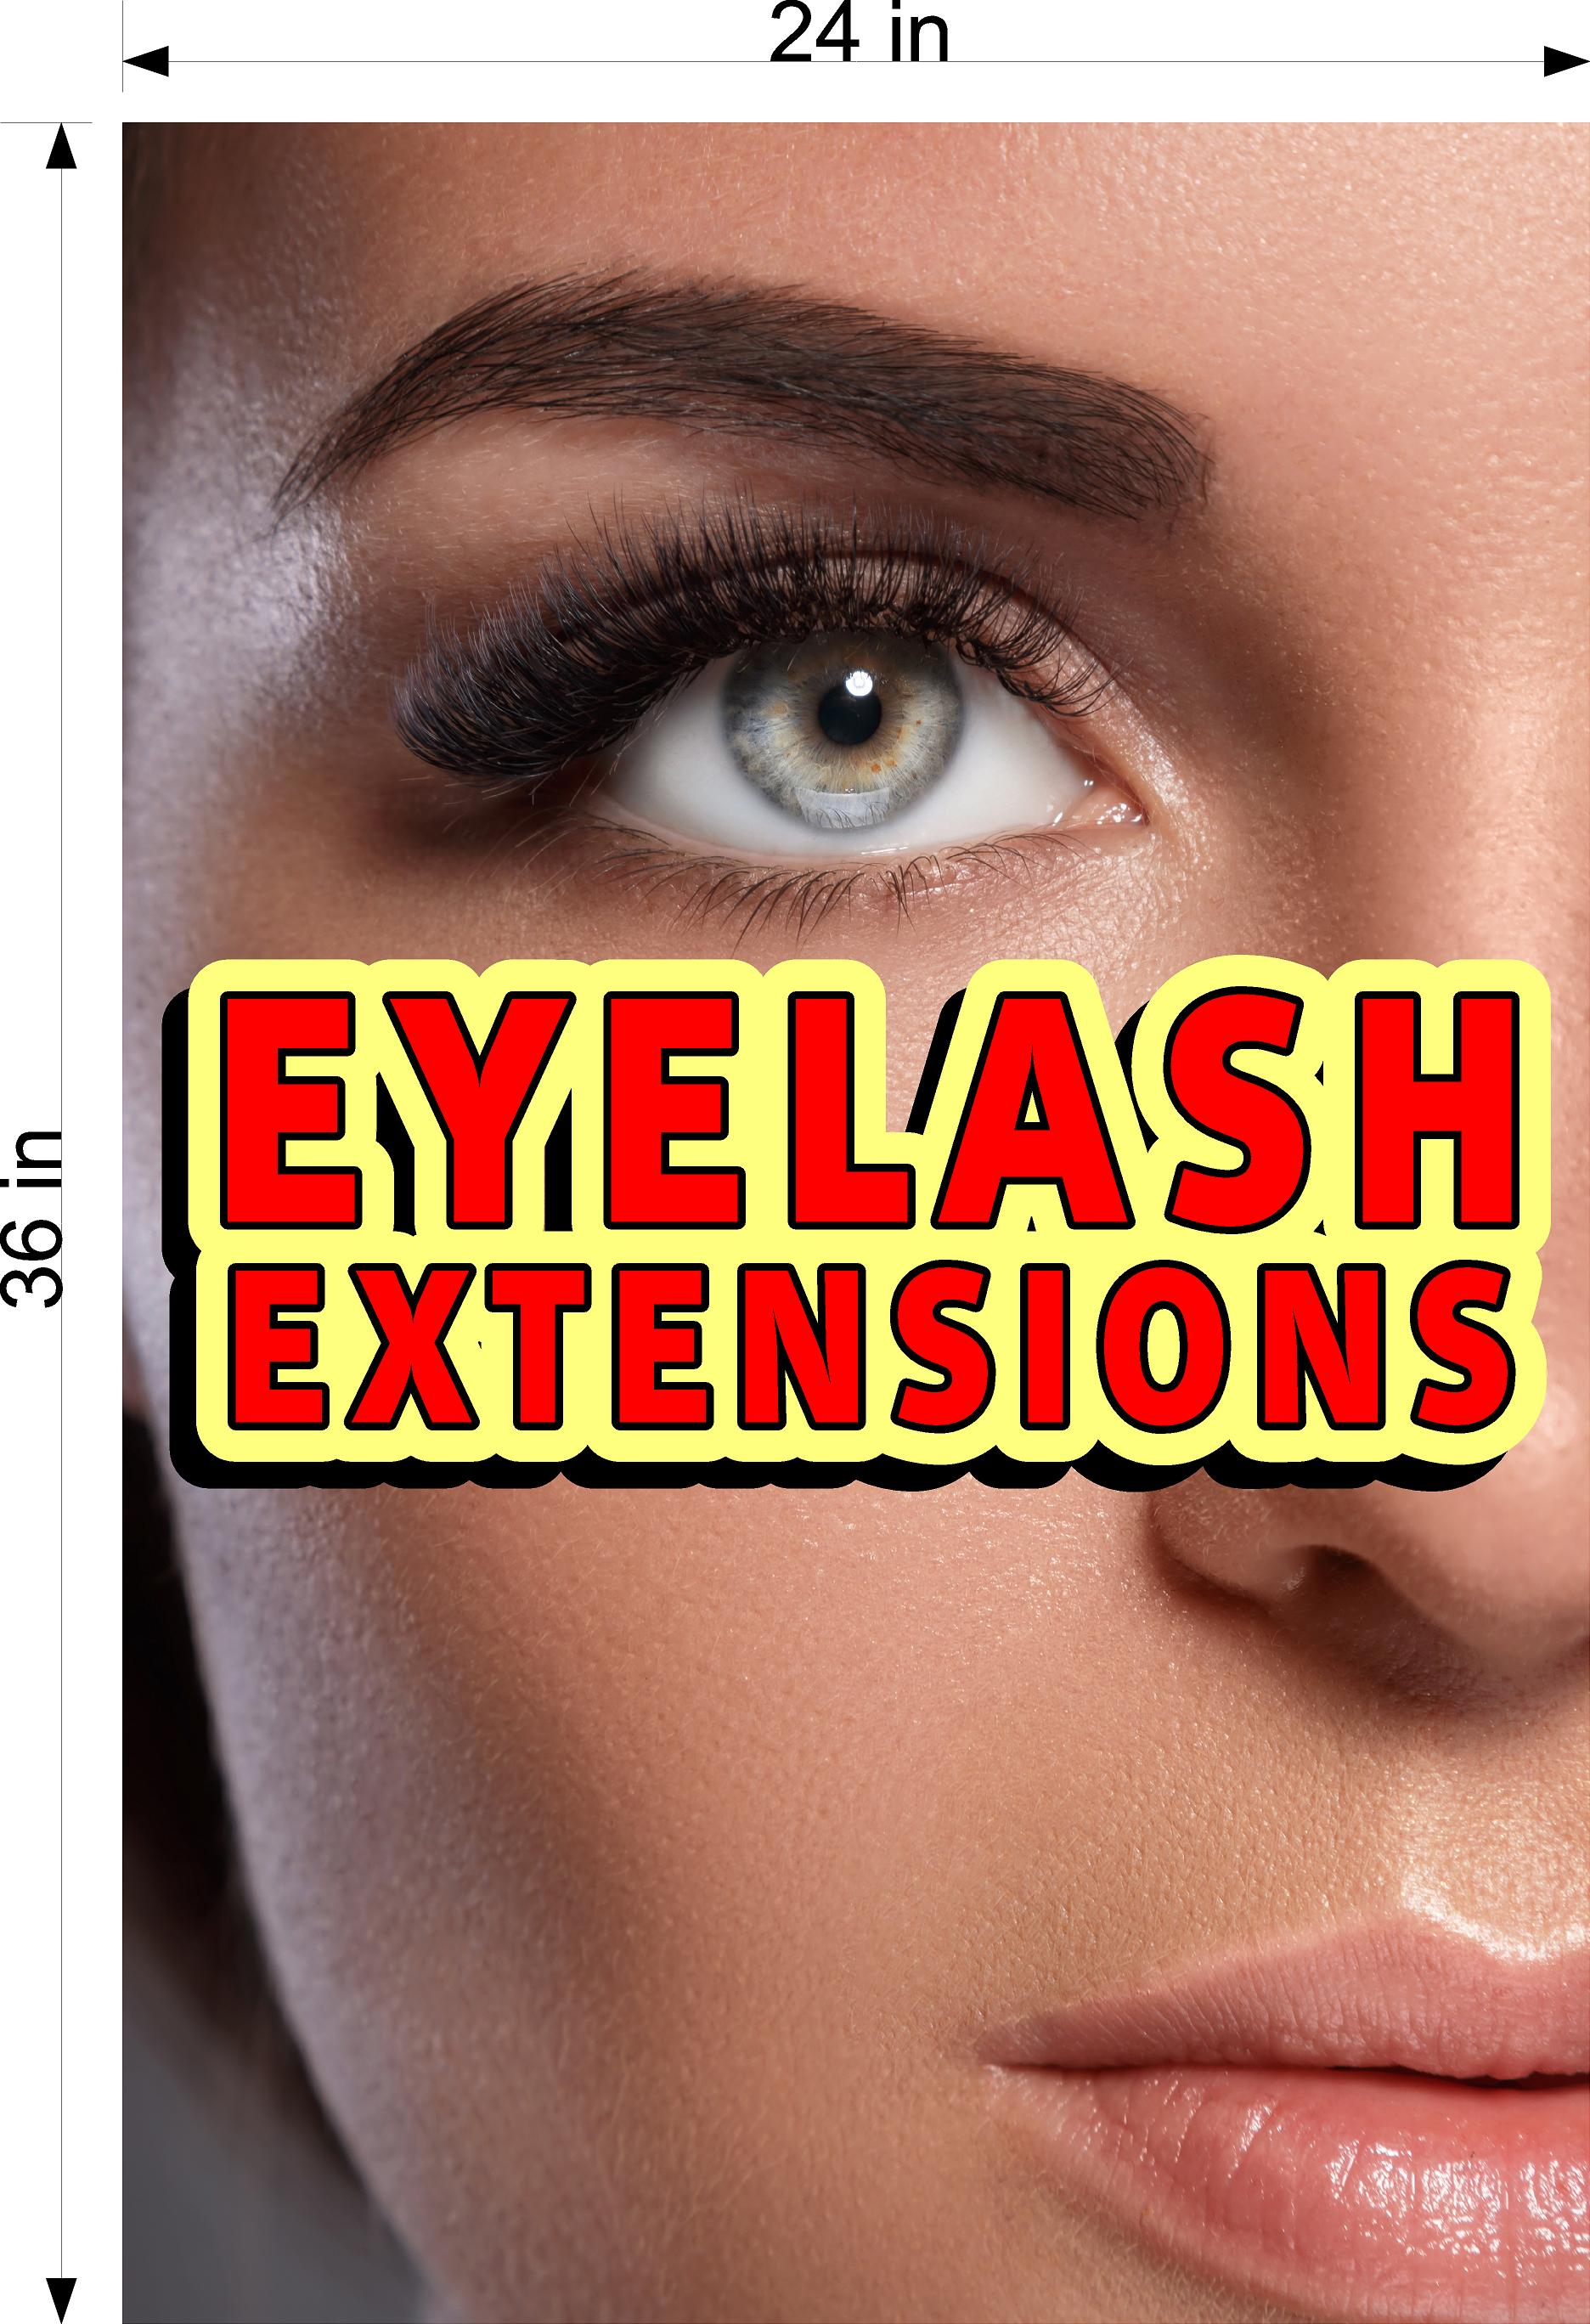 Eyelash 10 Photo-Realistic Paper Poster Premium Matte Interior Inside Sign Advertising Marketing Wall Window Non-Laminated Vertical Extension Vertical